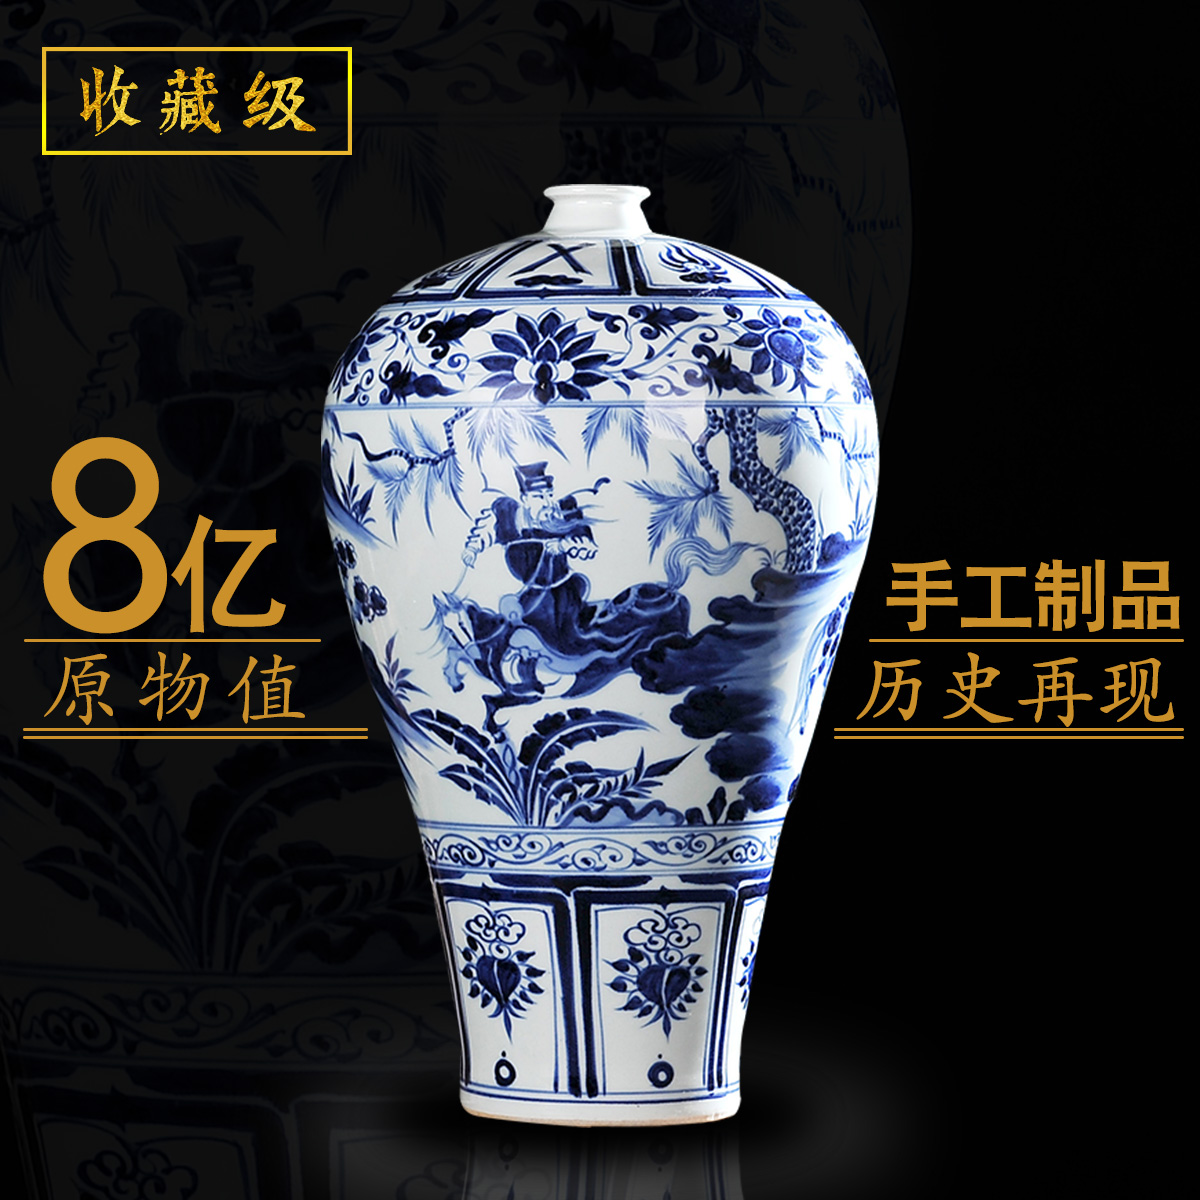 Li Zhenying Jingdezhen ceramic antique Yuan blue and white porcelain hand-painted vase Chinese style living room home decoration ornaments